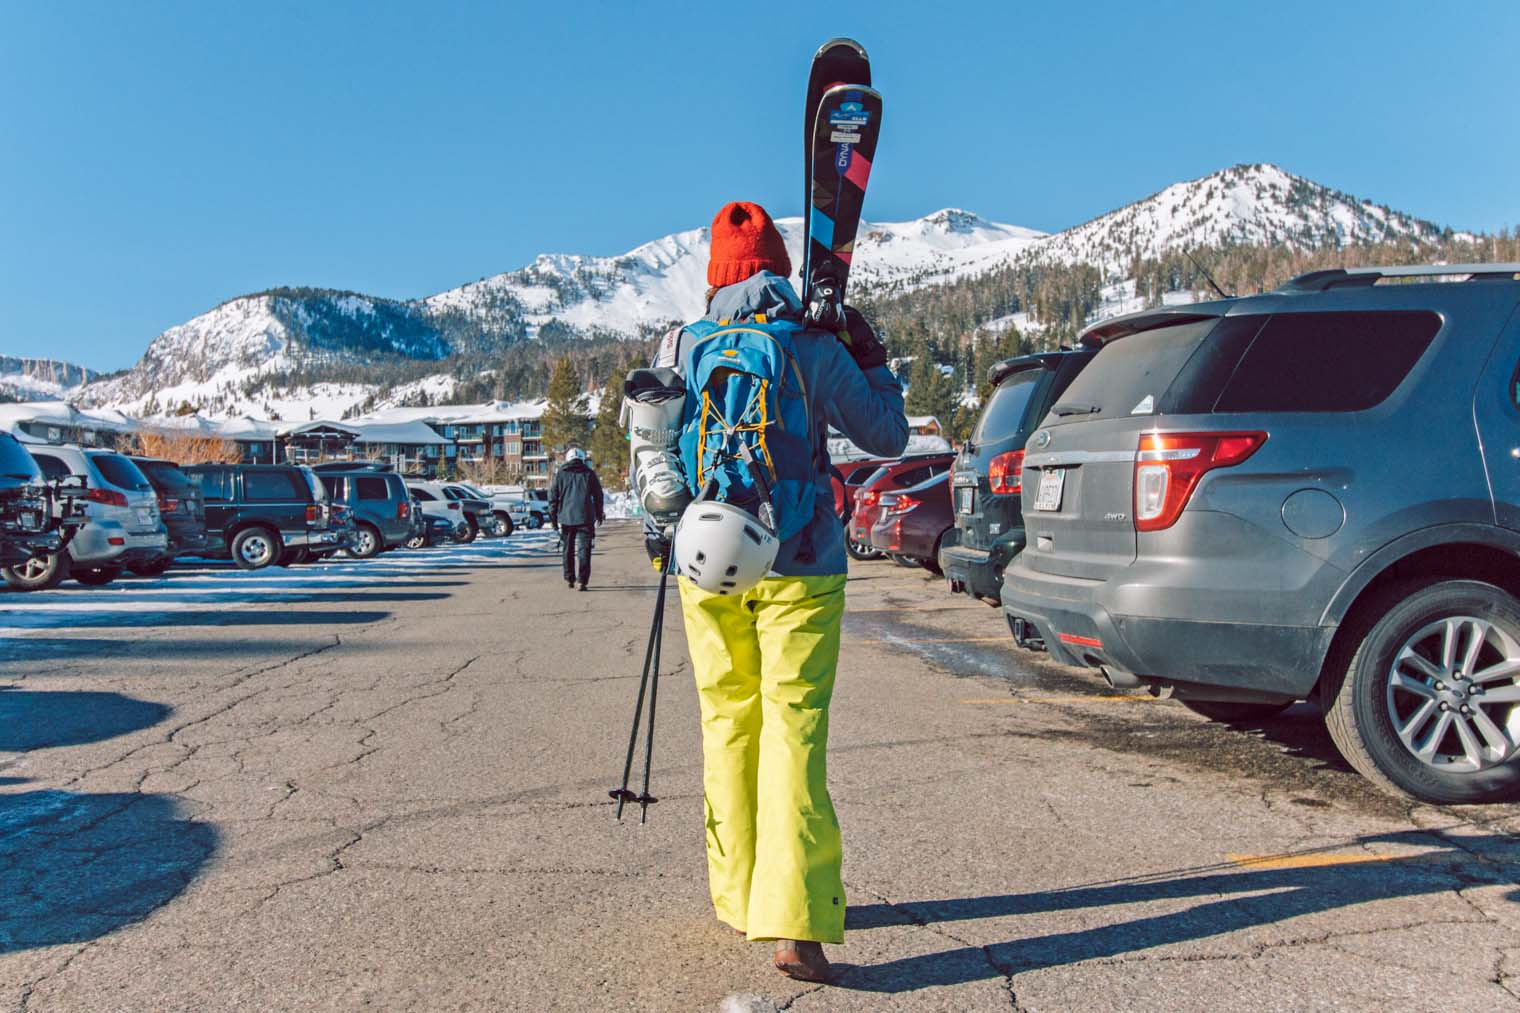 Megan carrying skis in a parking lot